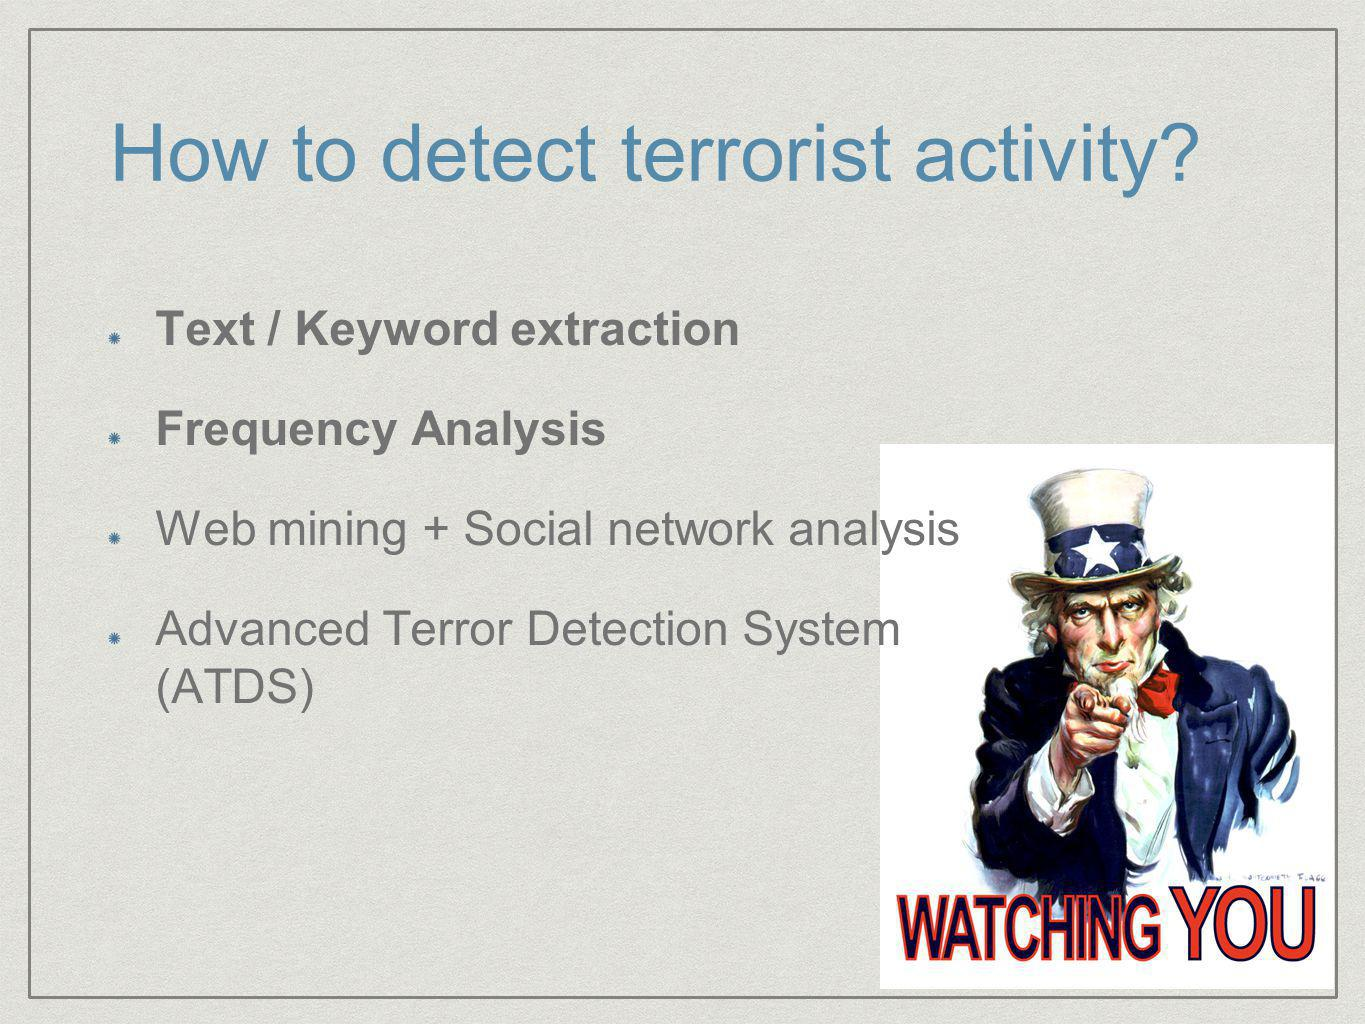 How to detect terrorist activity.